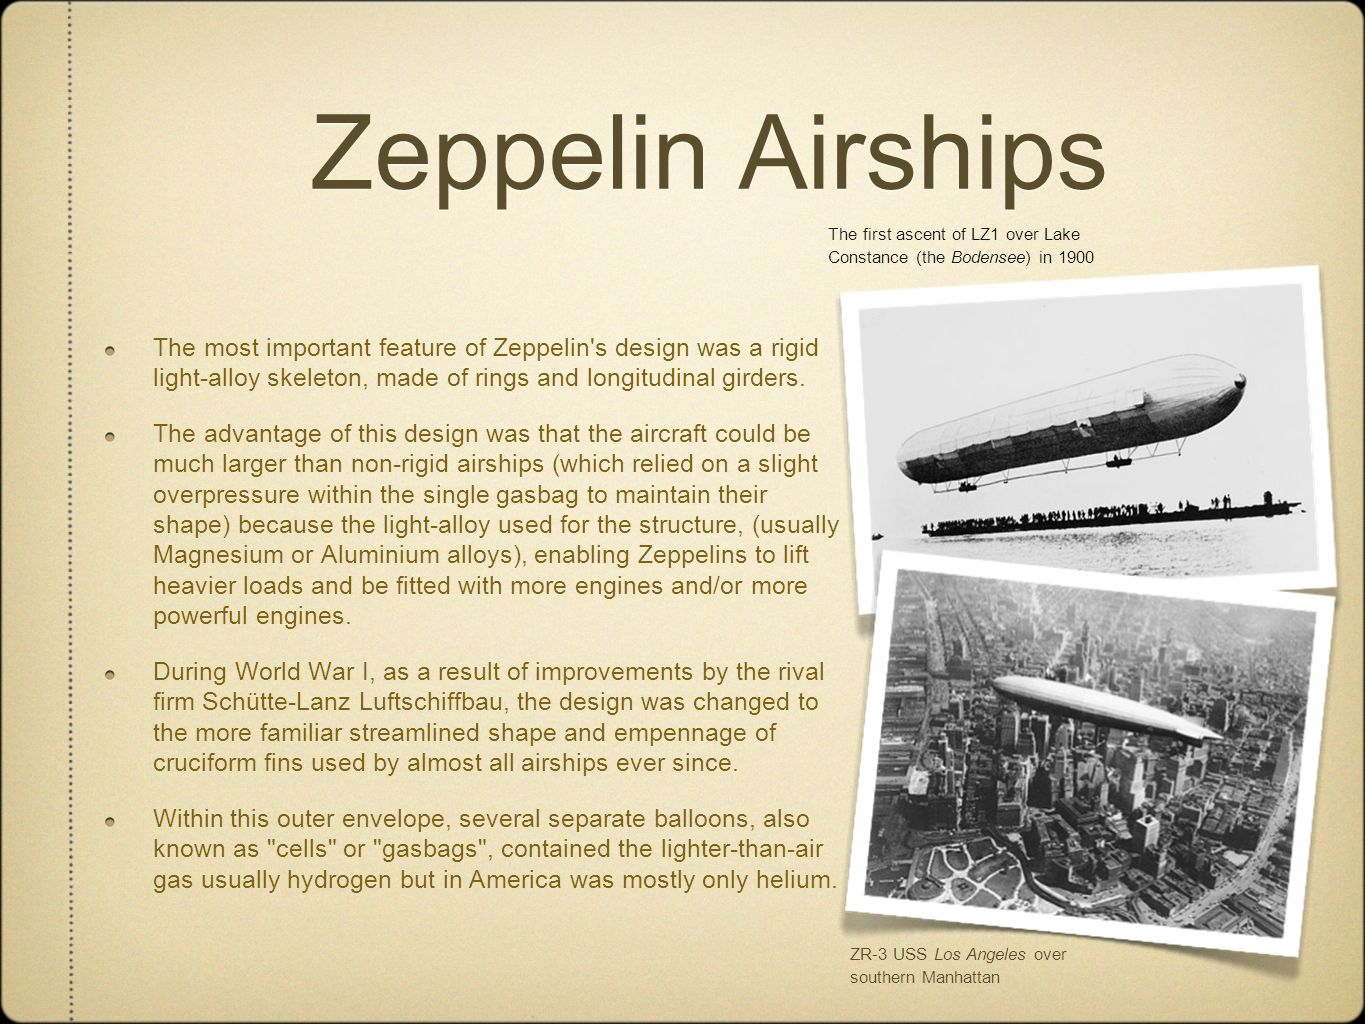 Zeppelin AirshipsThe most important feature of Zeppelin s design was a rigid light-alloy skeleton, made of rings and longitudinal girders.